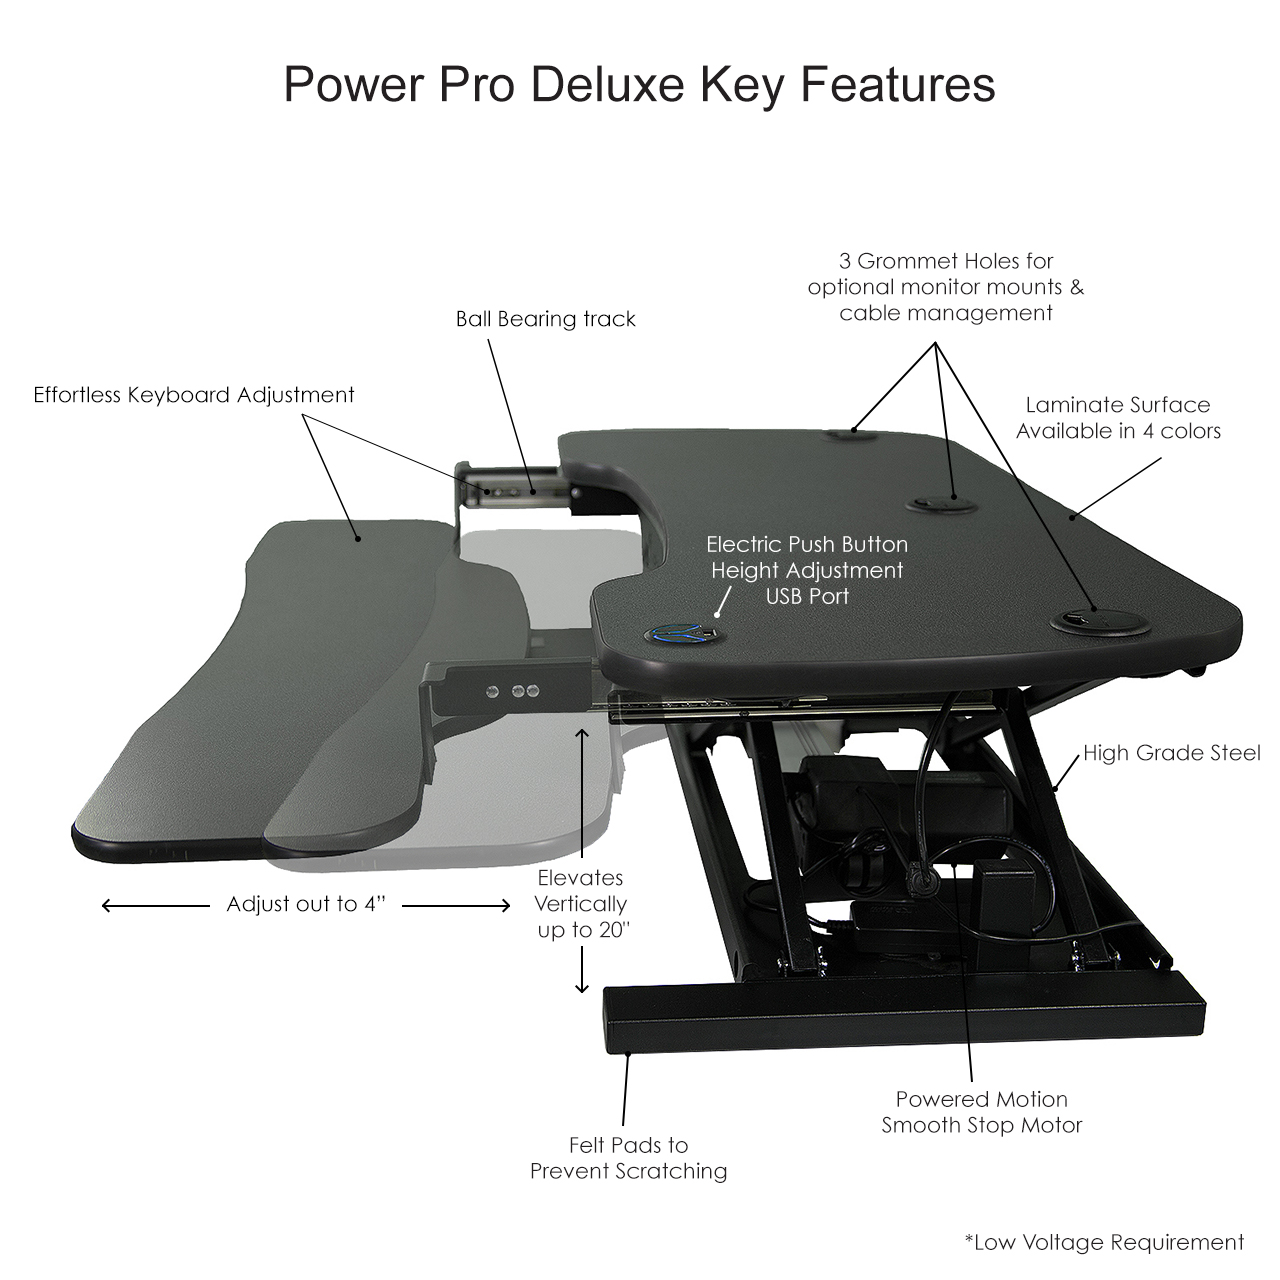 New sit stand desk key features